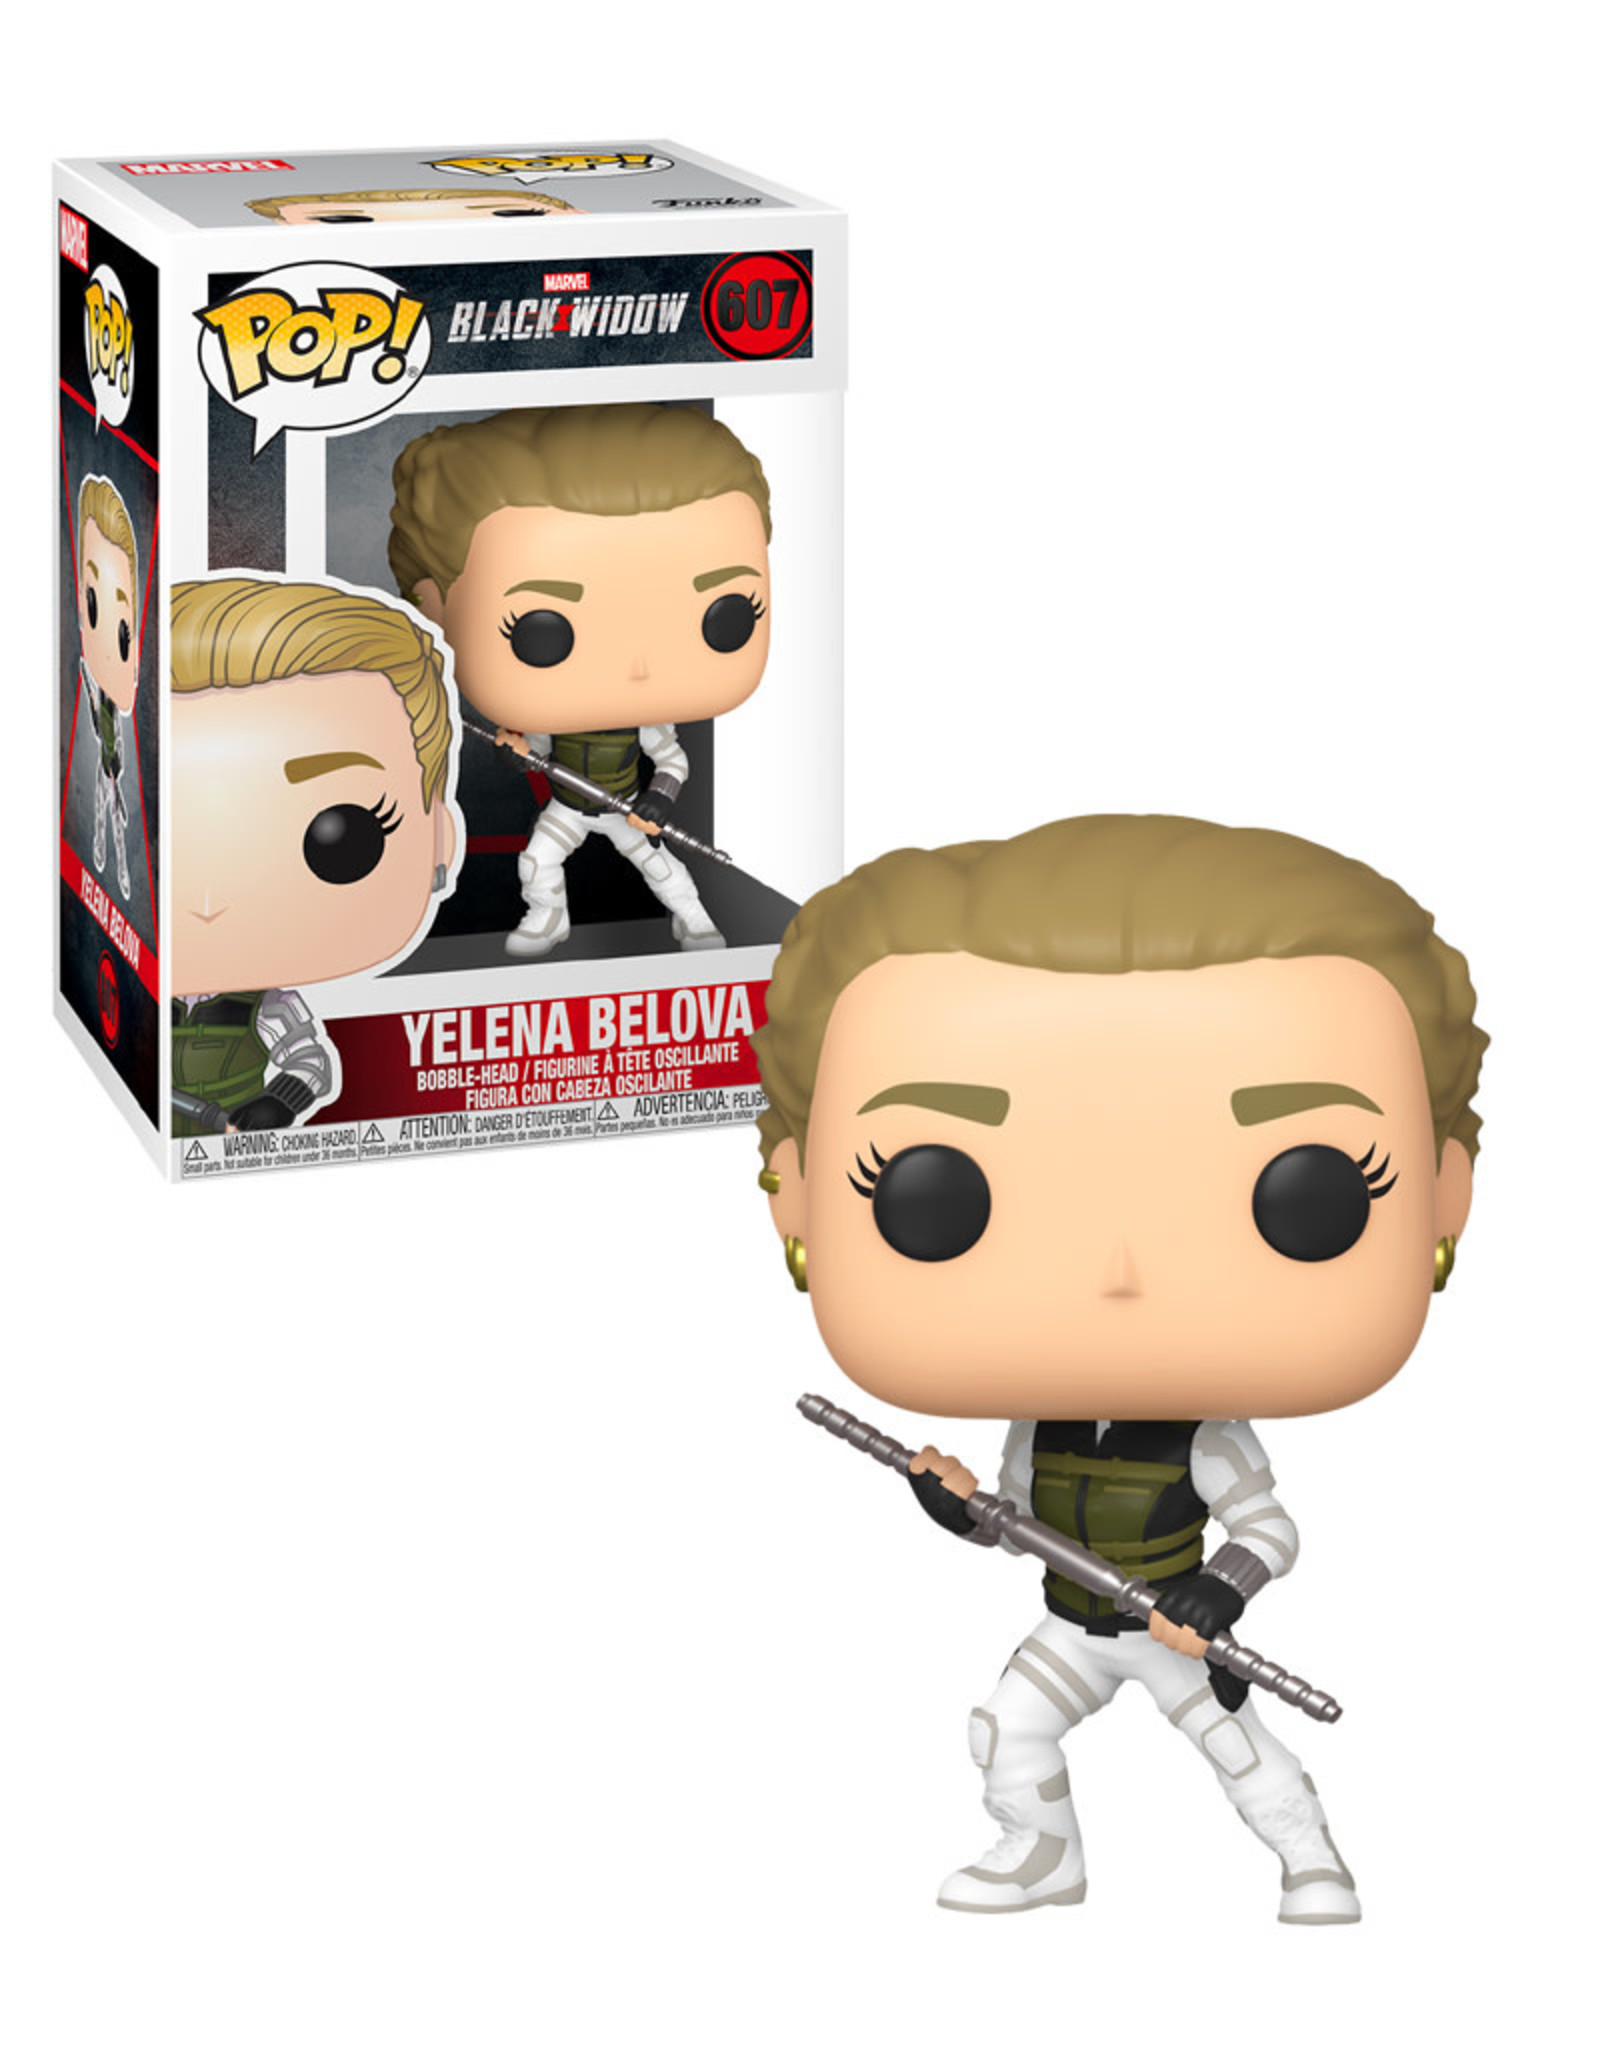 Black Widow 607 ( Funko pop ) Yelena Belova